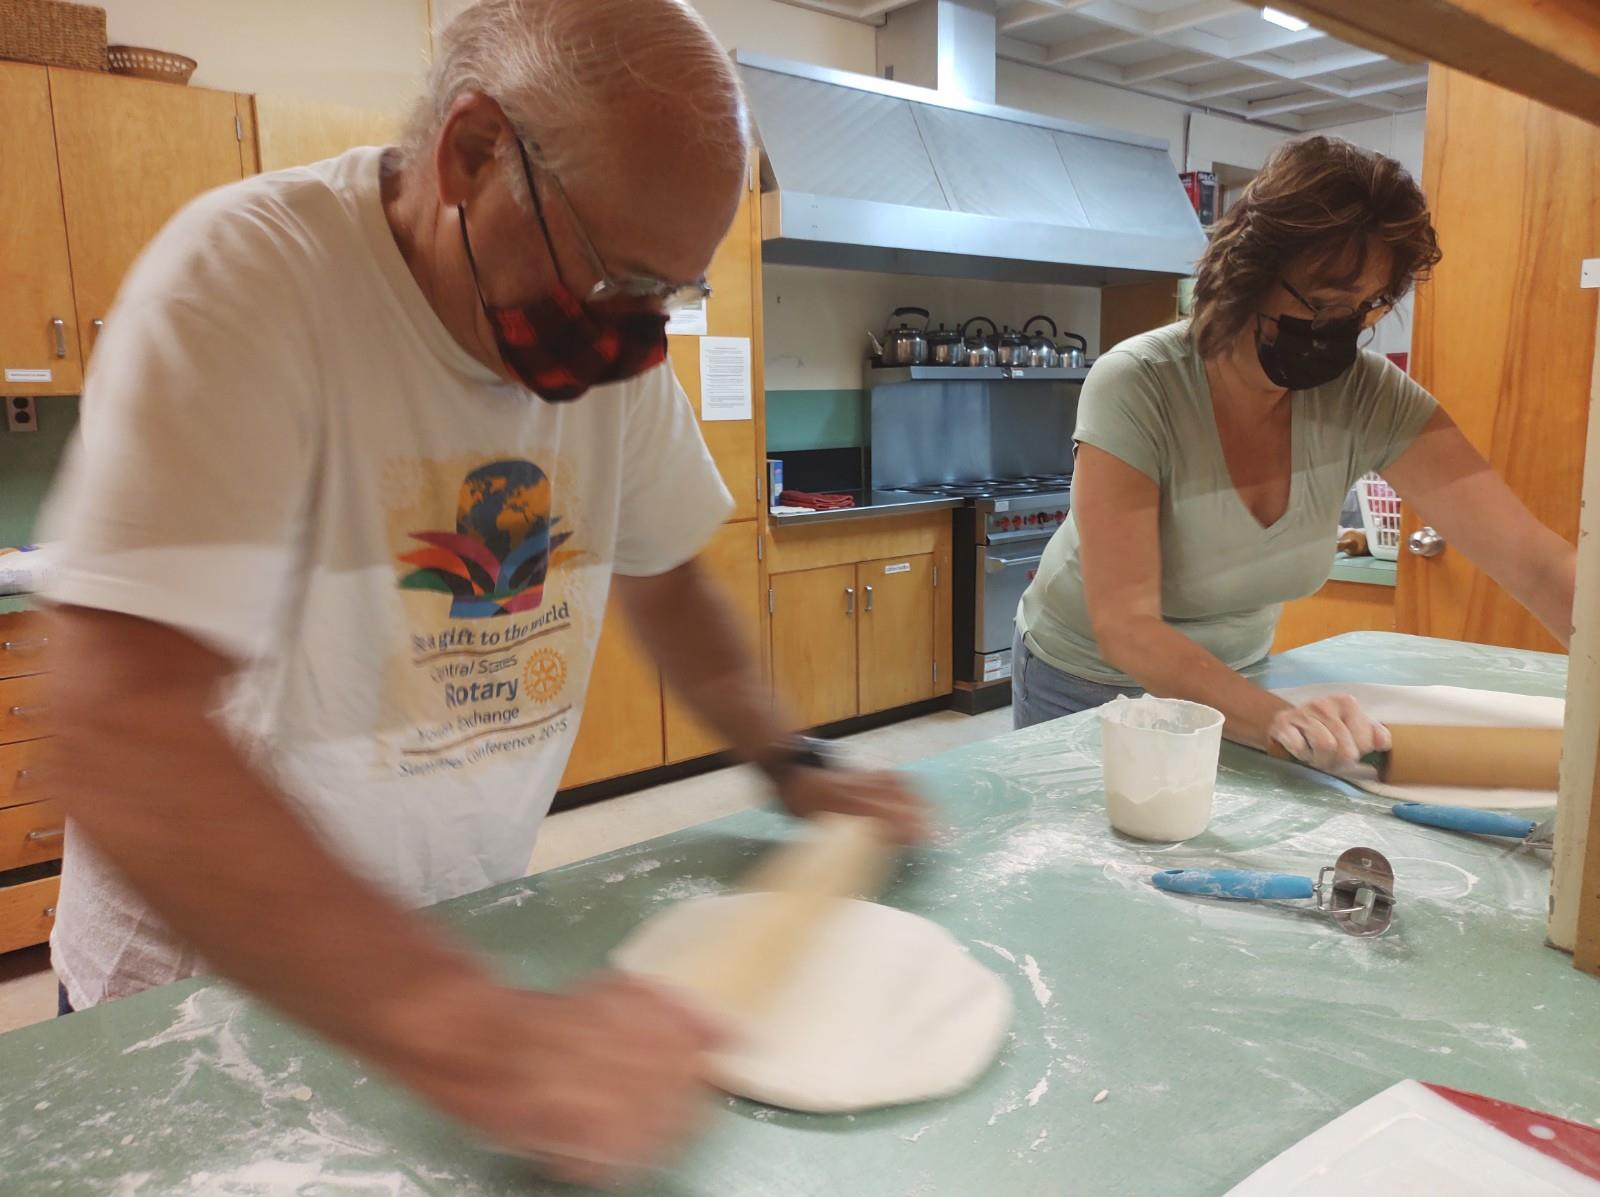 A man and a woman, both wearing face coverings, use rolling pins to roll out dough for perogy shells.